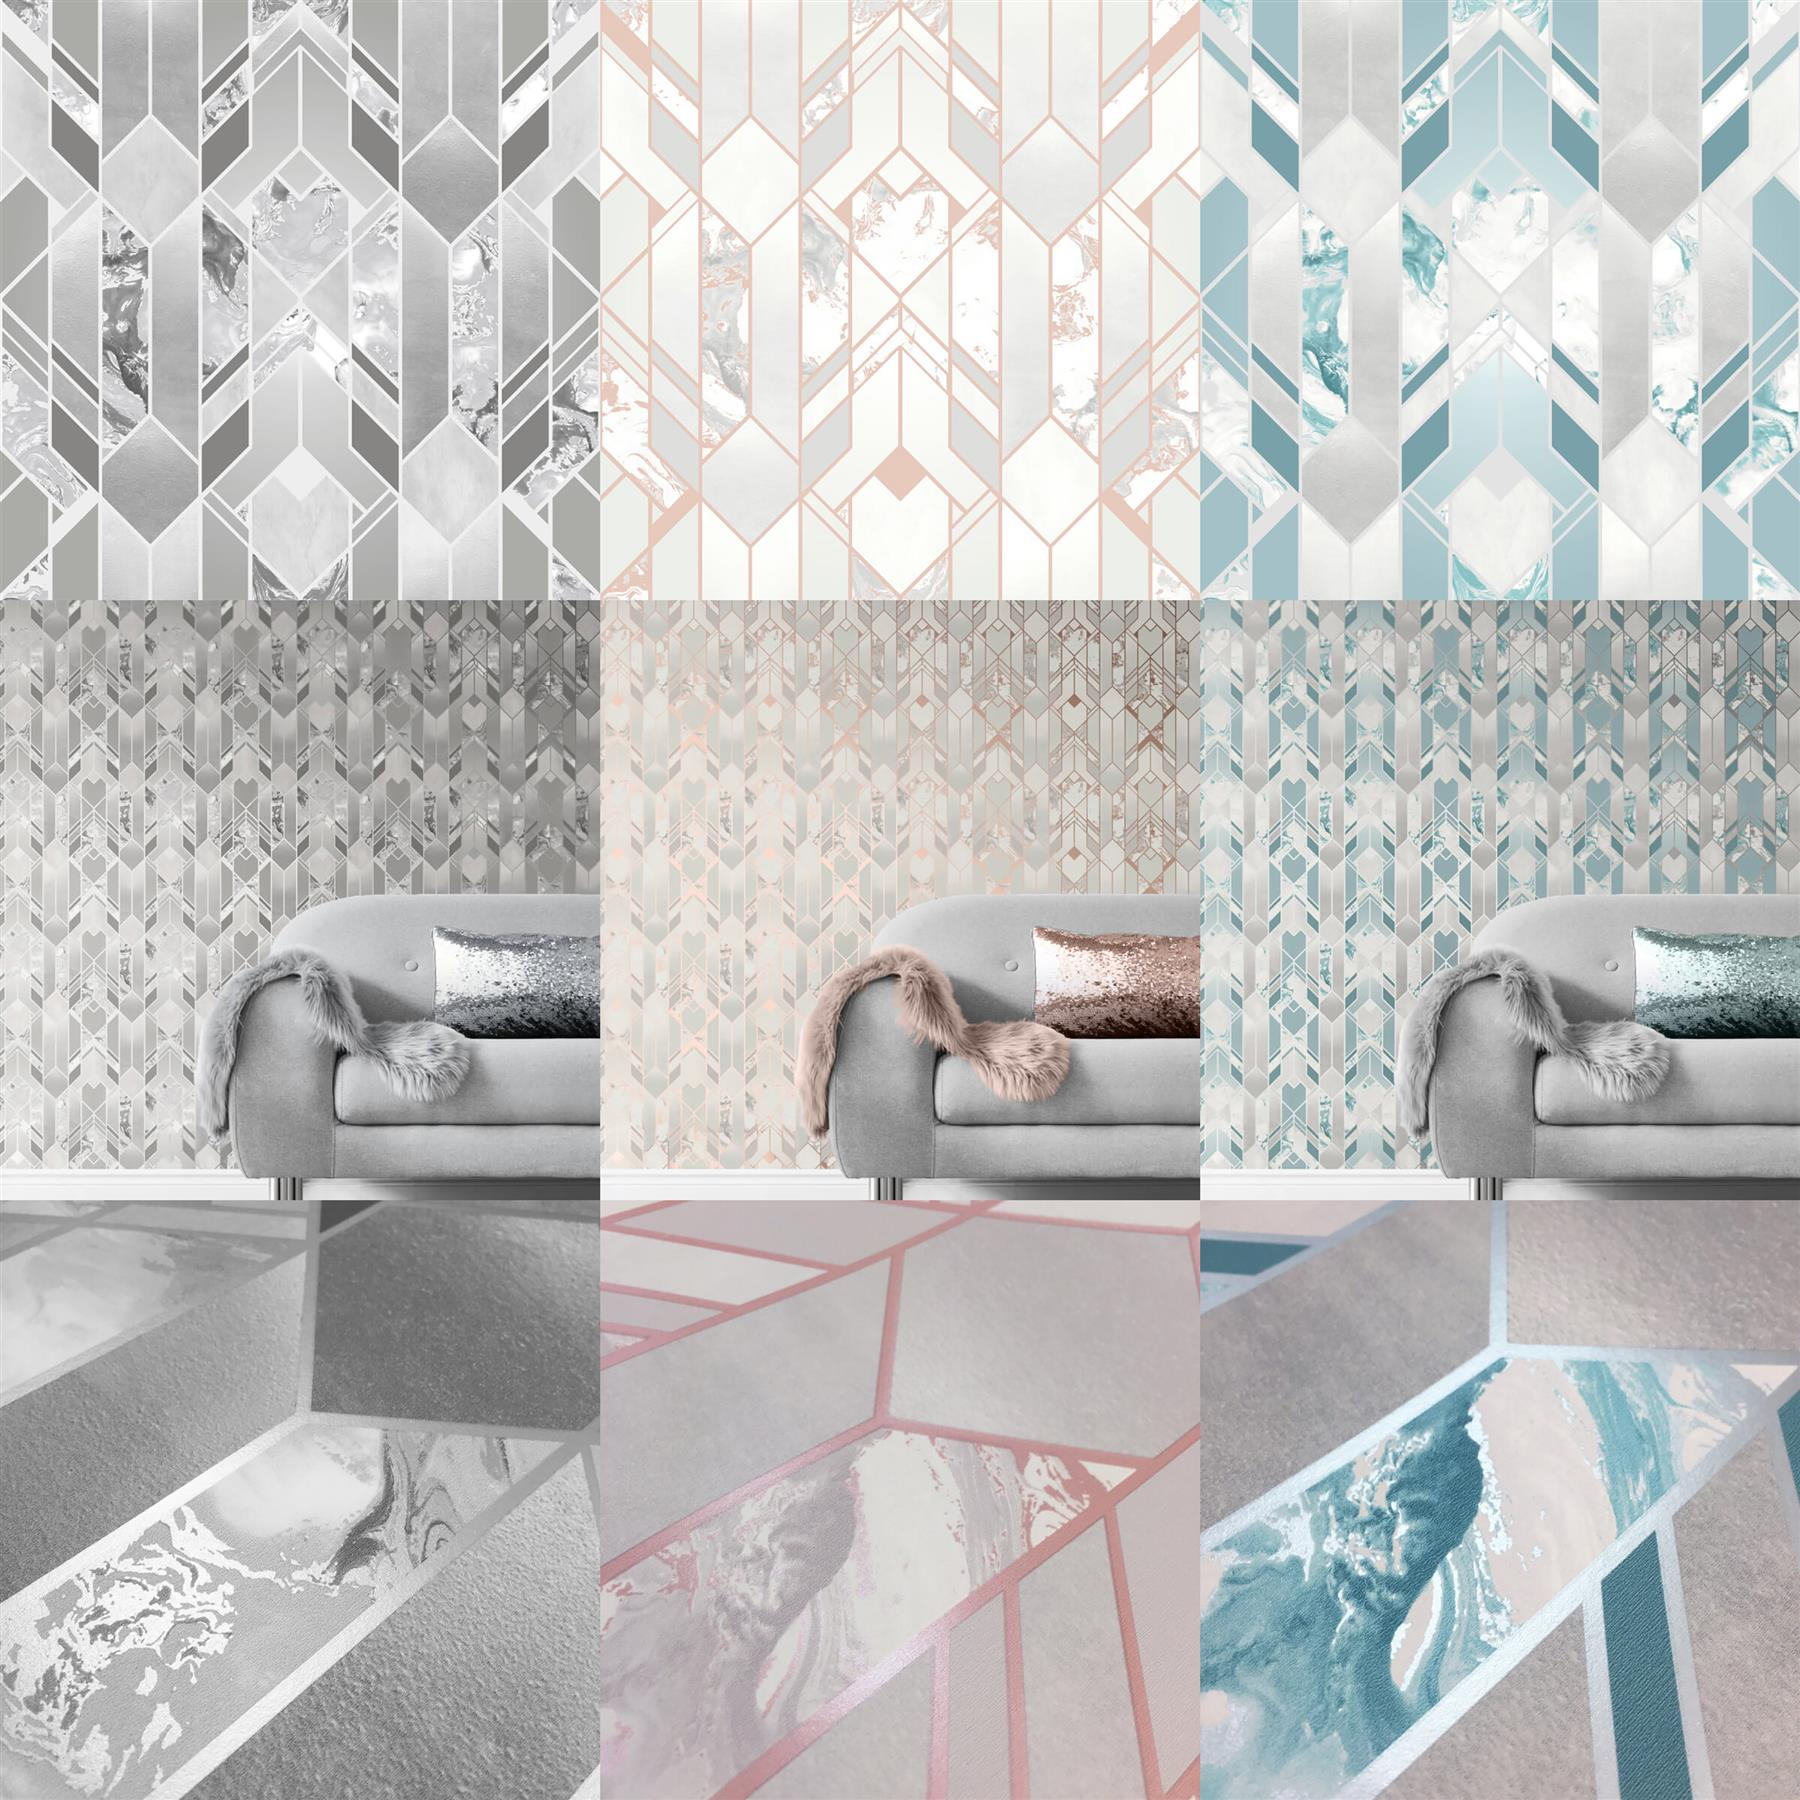 Elixir Geometric Marble Wallpaper Grey Rose Gold Teal Silver Metallic Muriva Ebay